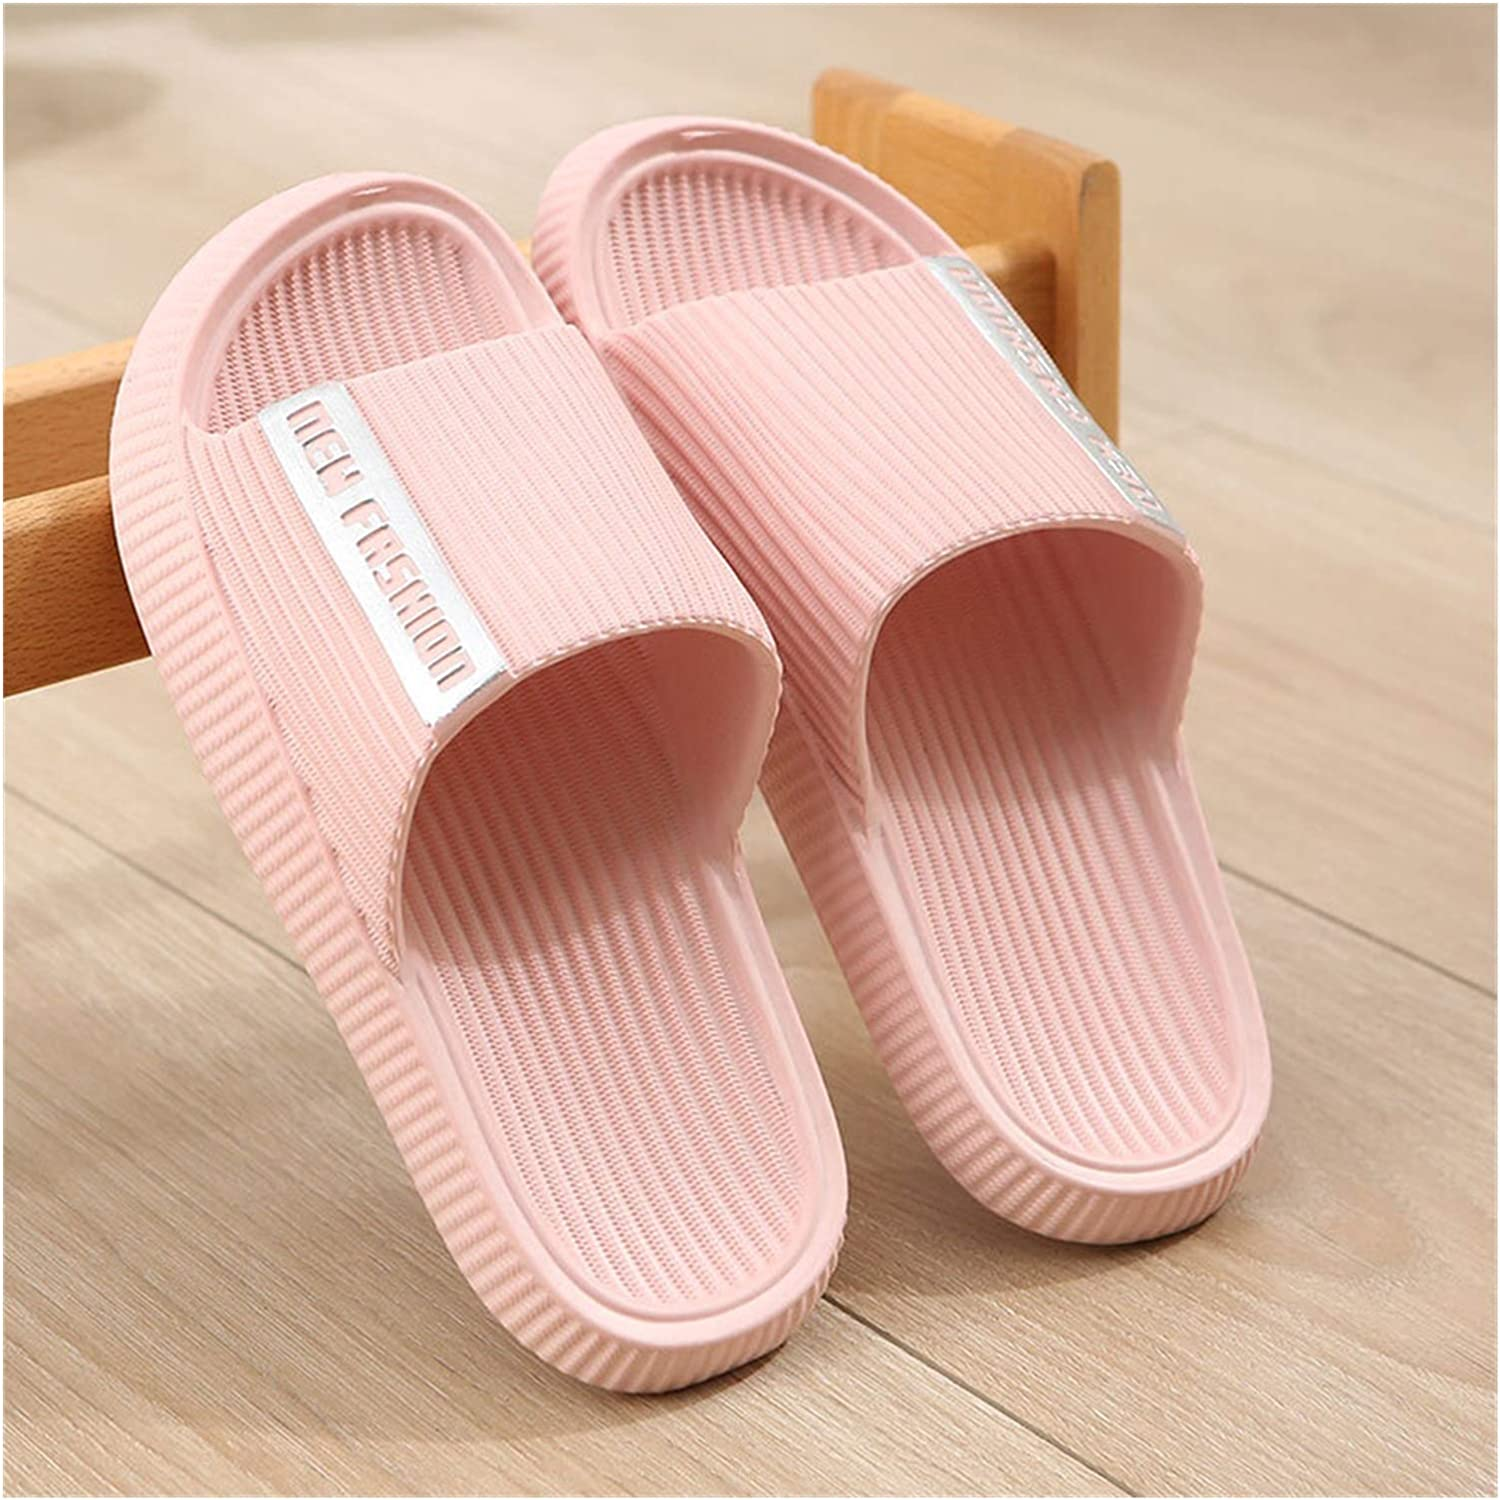 zxb-shop Flip Flop Soft-Soled Sandals and Slippers Summer Lightweight Thick-Soled Men and Women Couples Home Indoor Bathing Bathroom Slides (Color : B, Size : 36/37)